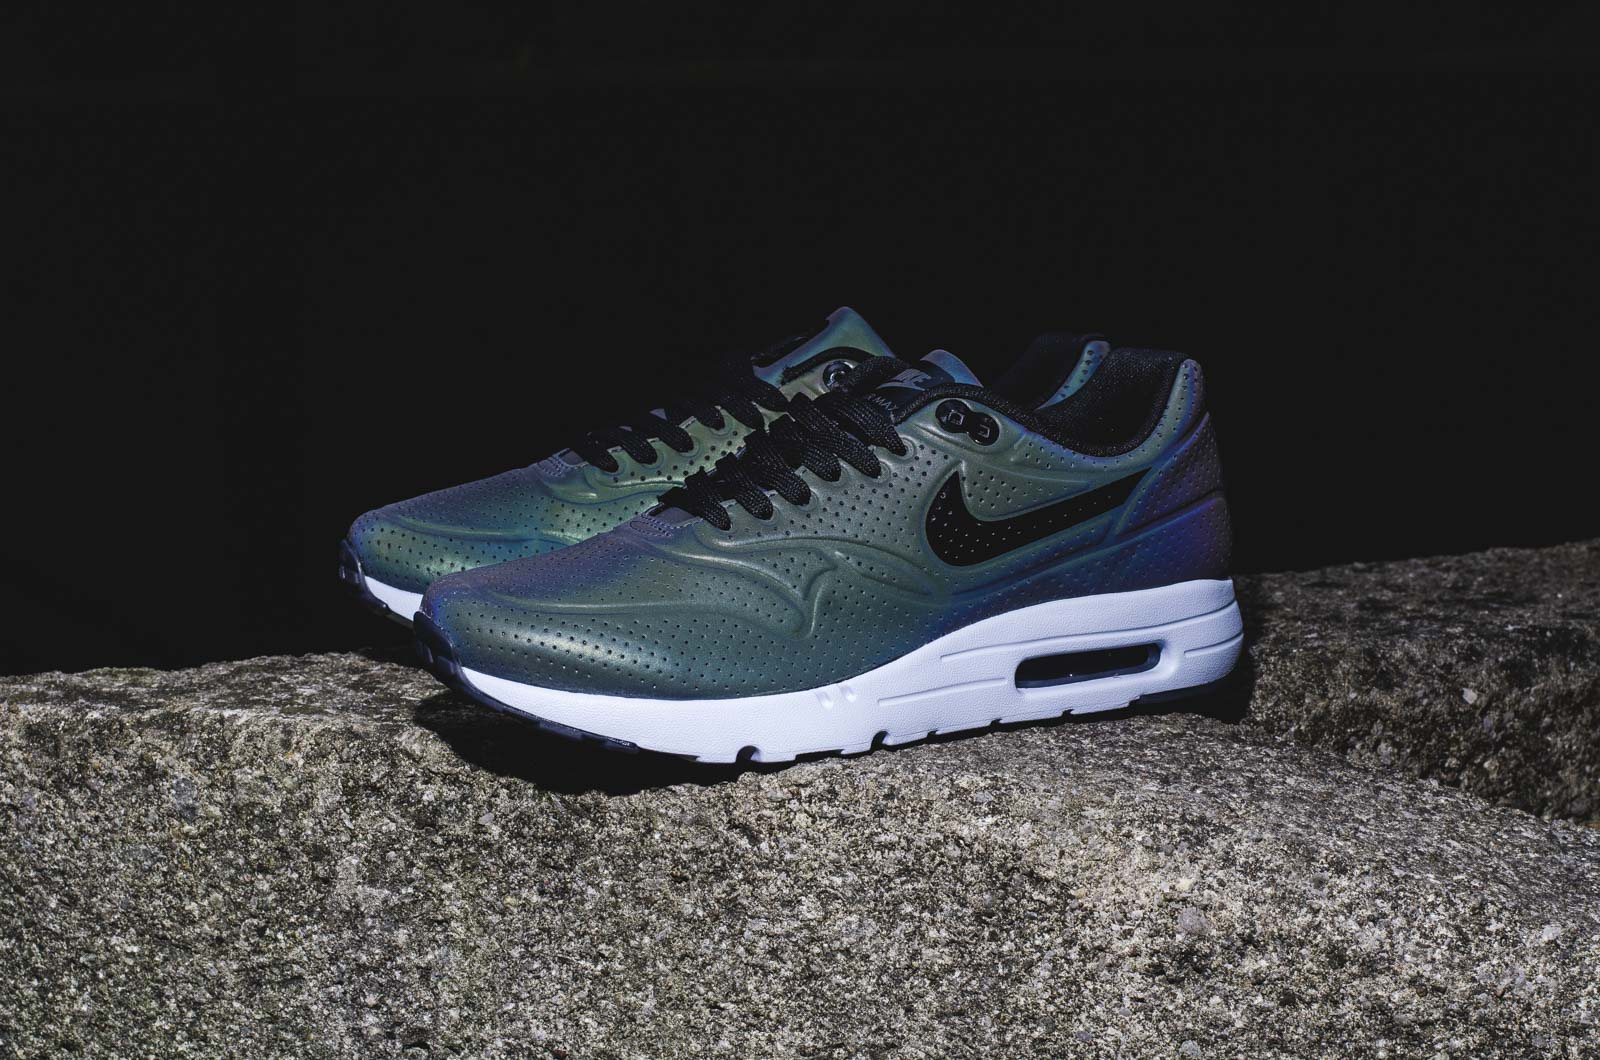 nike air max 1 ultra moire iridescent 05 14 15